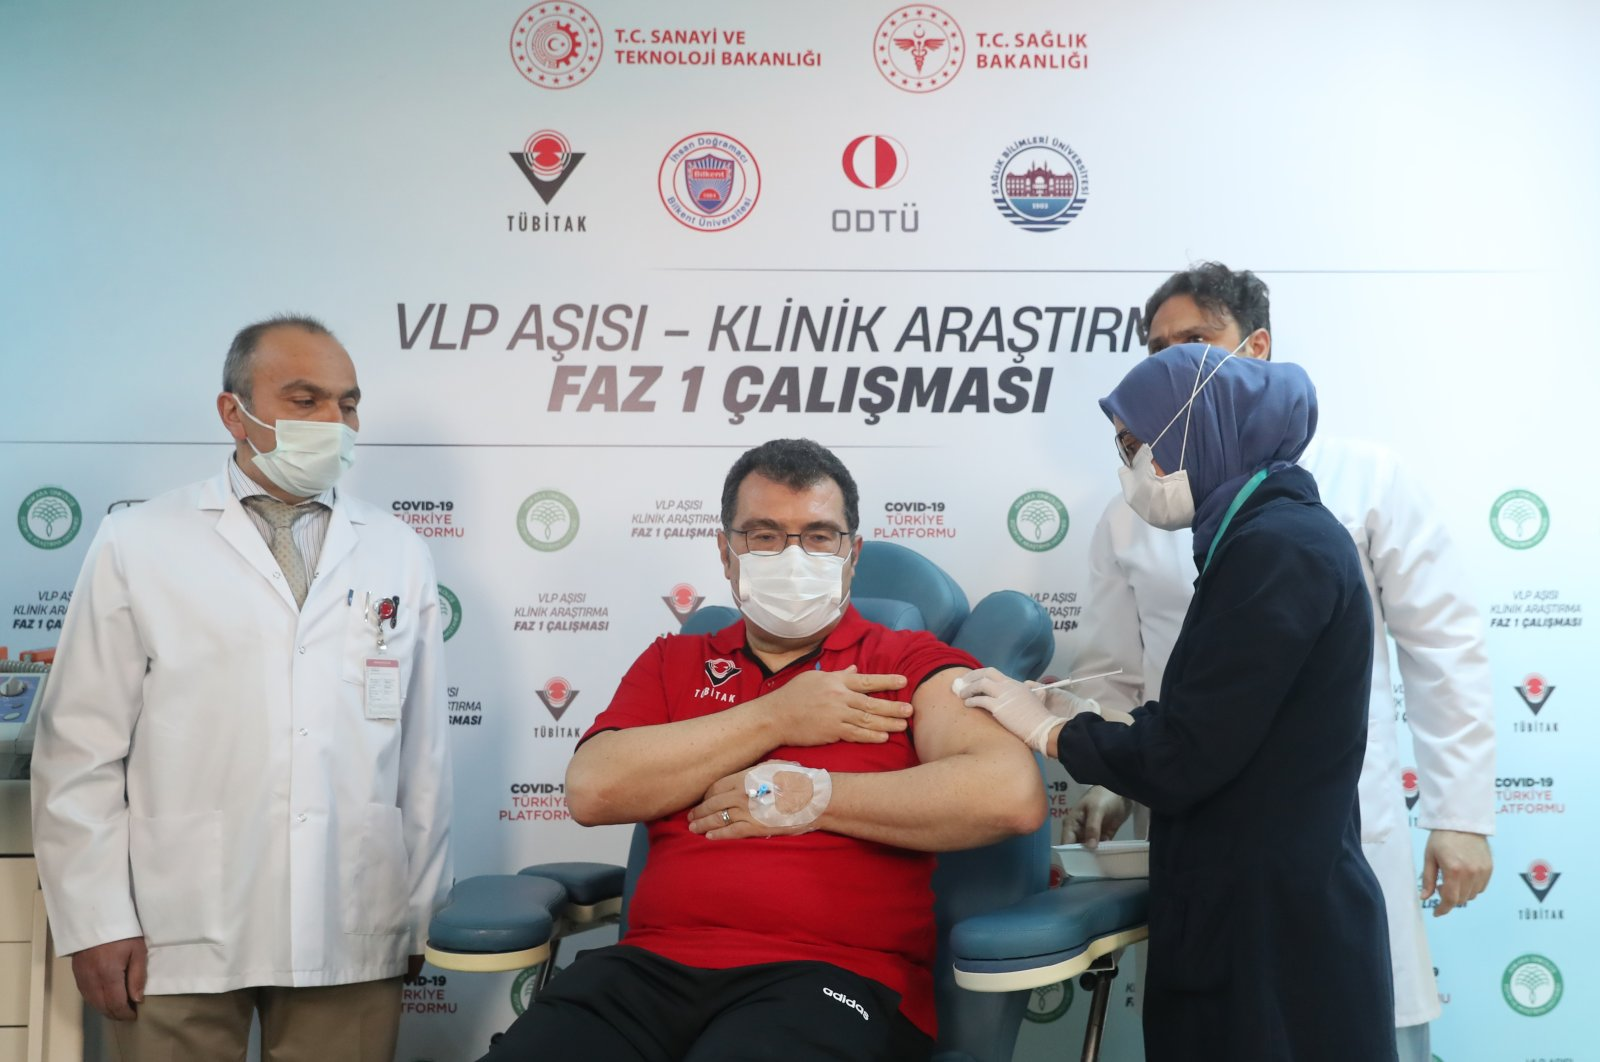 Scientific and Technological Research Council of Turkey (TÜBITAK) President Hasan Mandal receives a dose in the Phase 1 trial of a vaccine, in the capital Ankara, Turkey, April 17, 2021. (AA PHOTO)